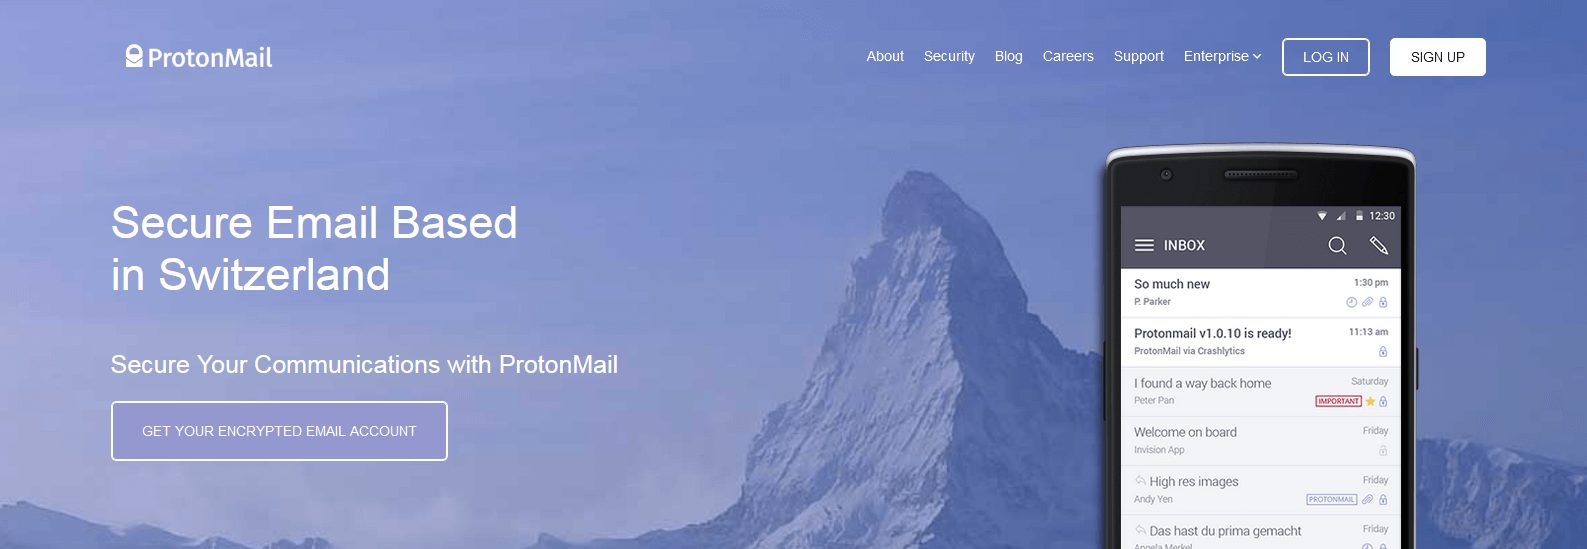 ProtonMail - Create Your Secure Anonymous Email Account